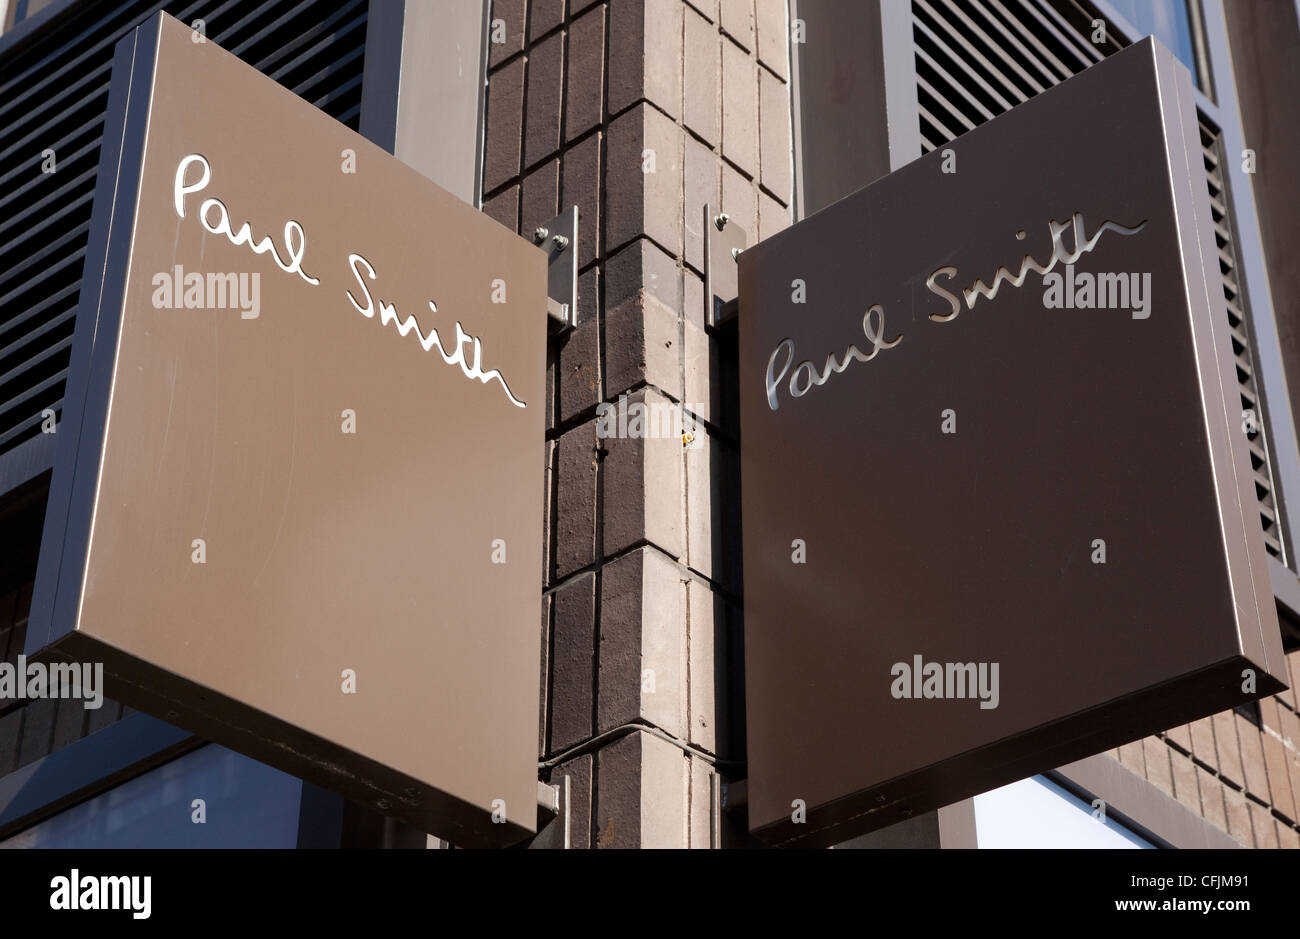 Sign on Paul Smith fashion store, London - Stock Image